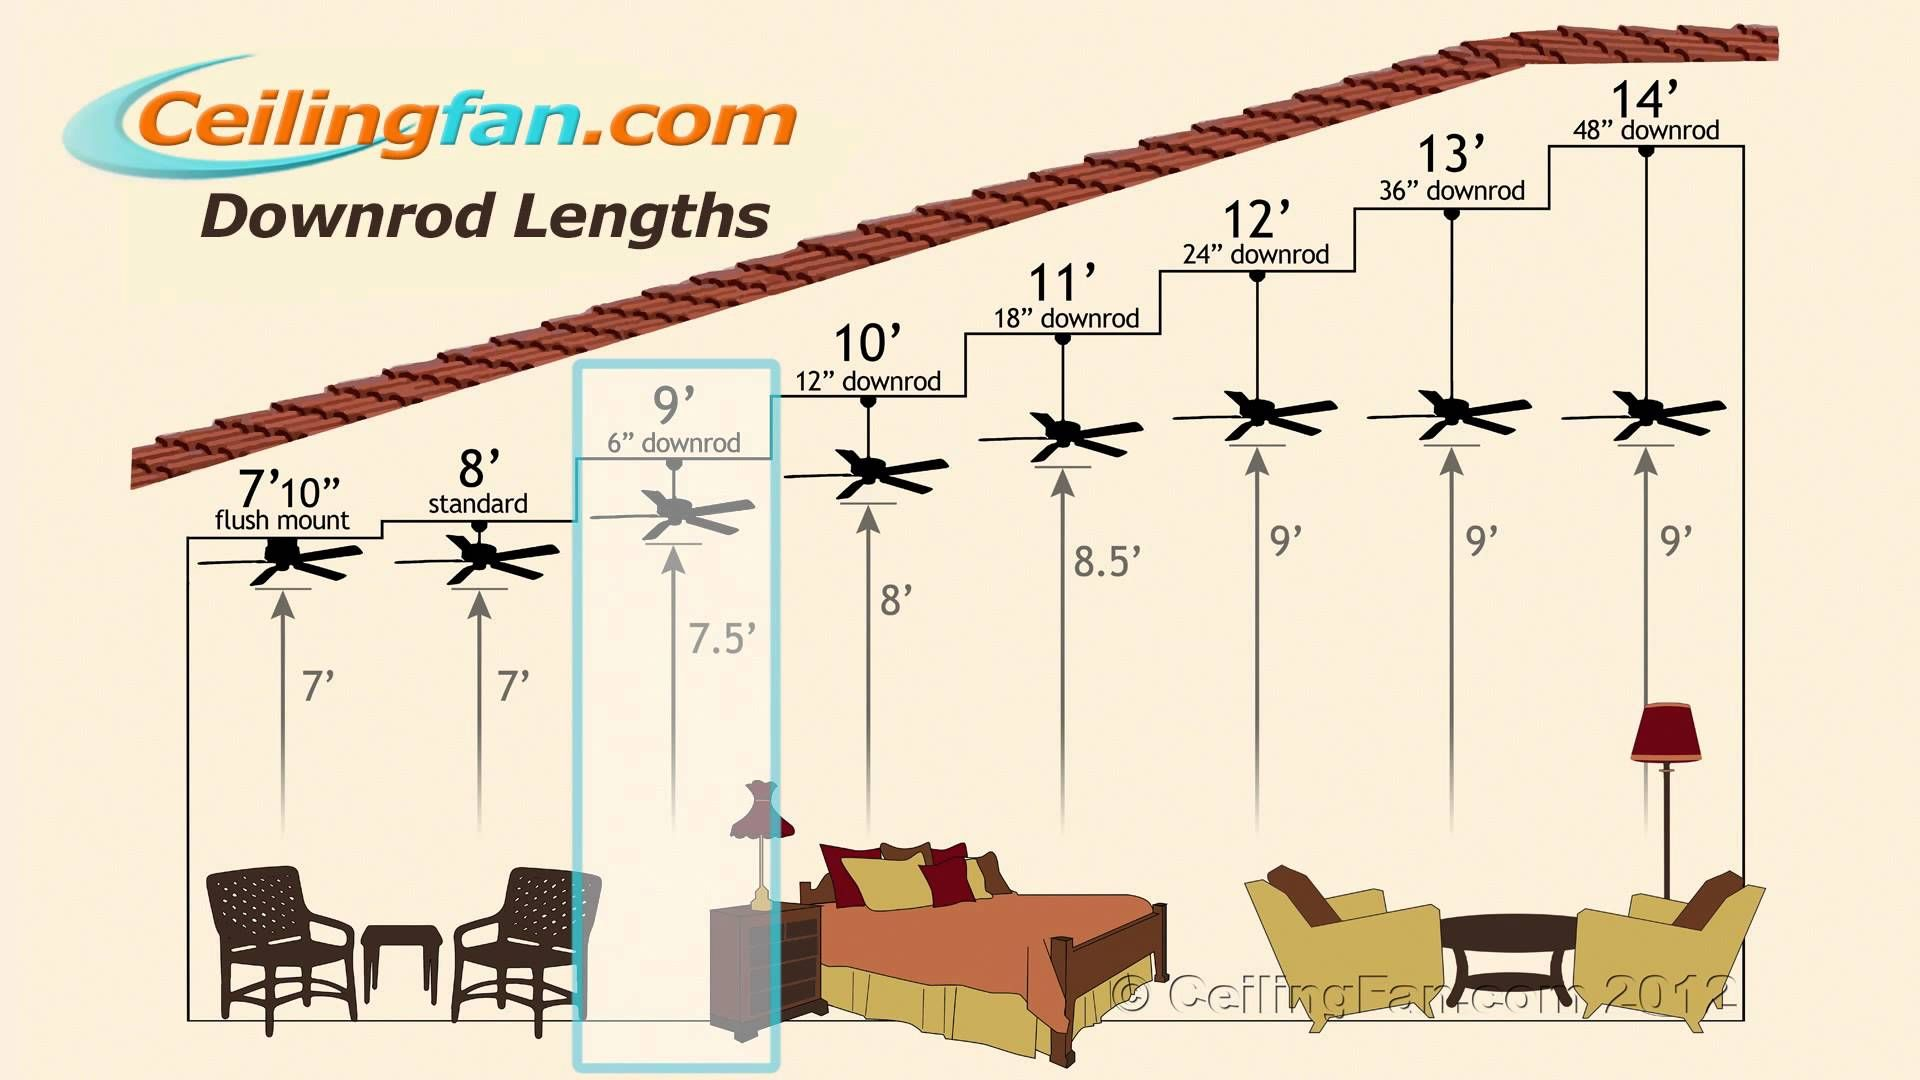 Wondering which downrod to put with your ceiling fan? Find